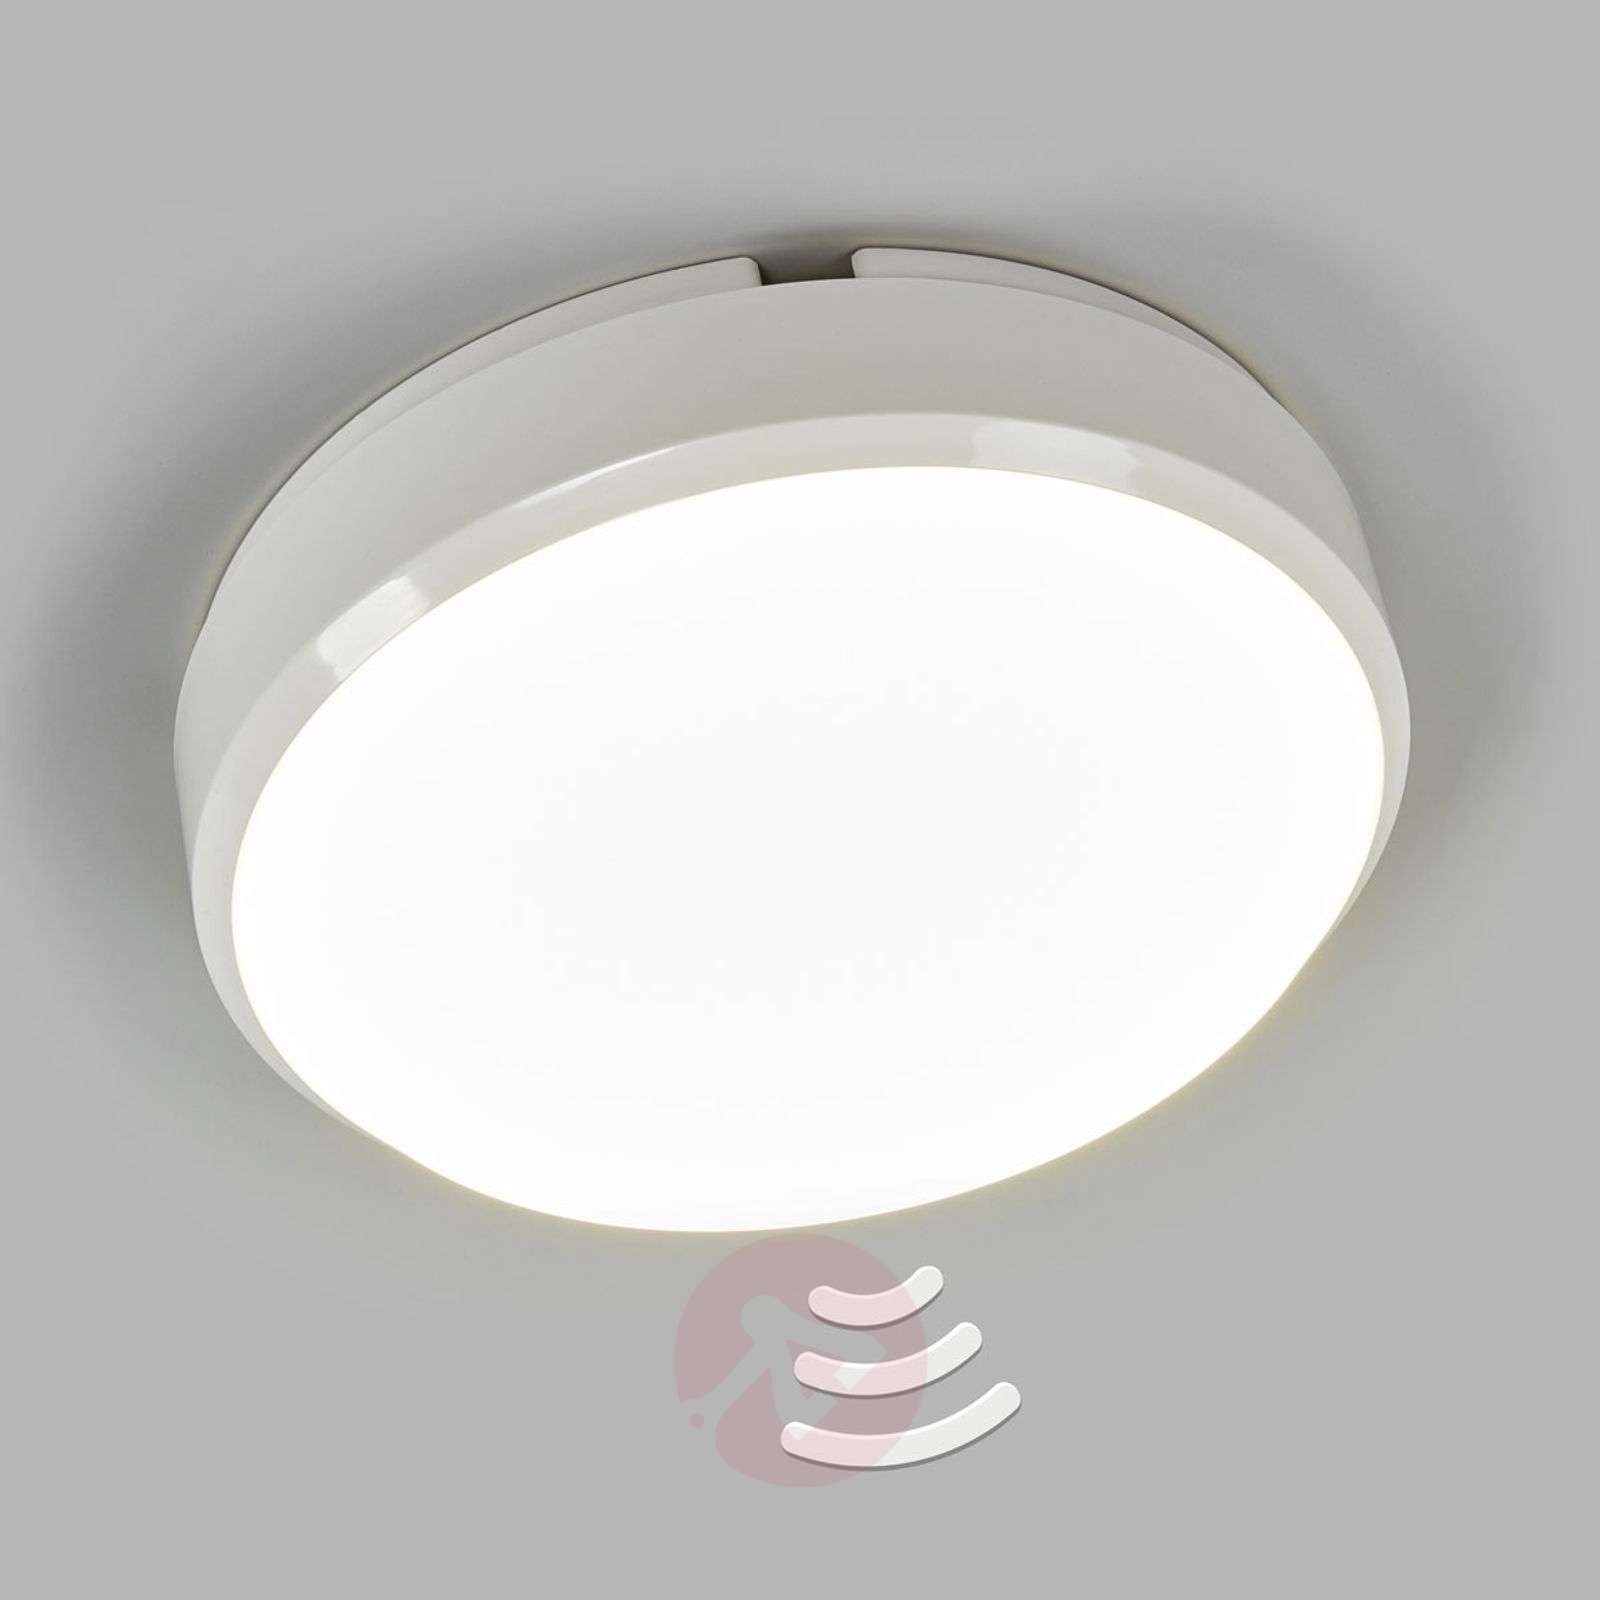 Ceiling lights with sensor buy online lights round led ceiling light bulkhead with sensor aloadofball Choice Image